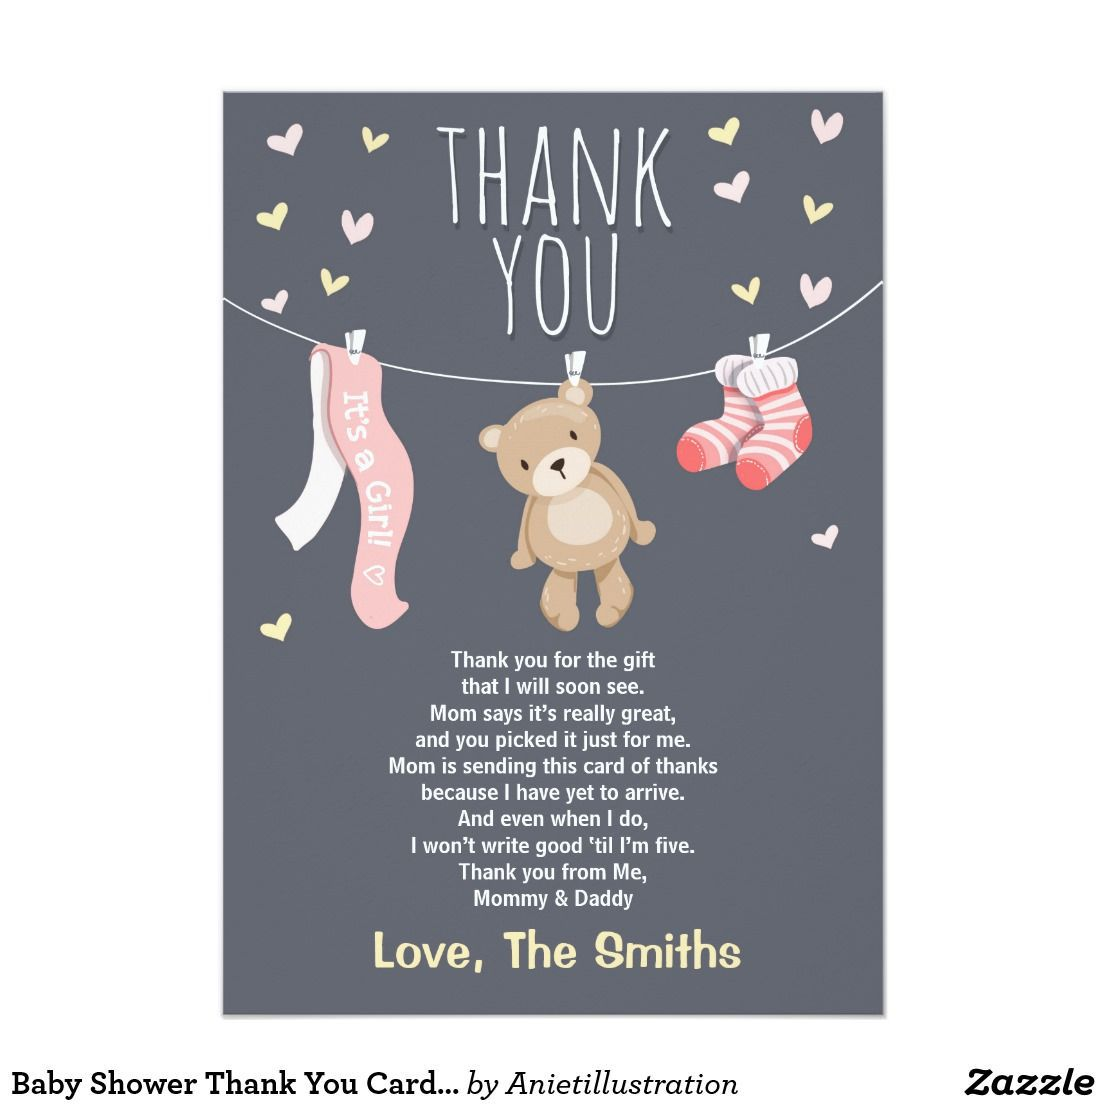 004 Stunning Thank You Note Template Baby Shower Design  Card Free Sample For Letter GiftFull